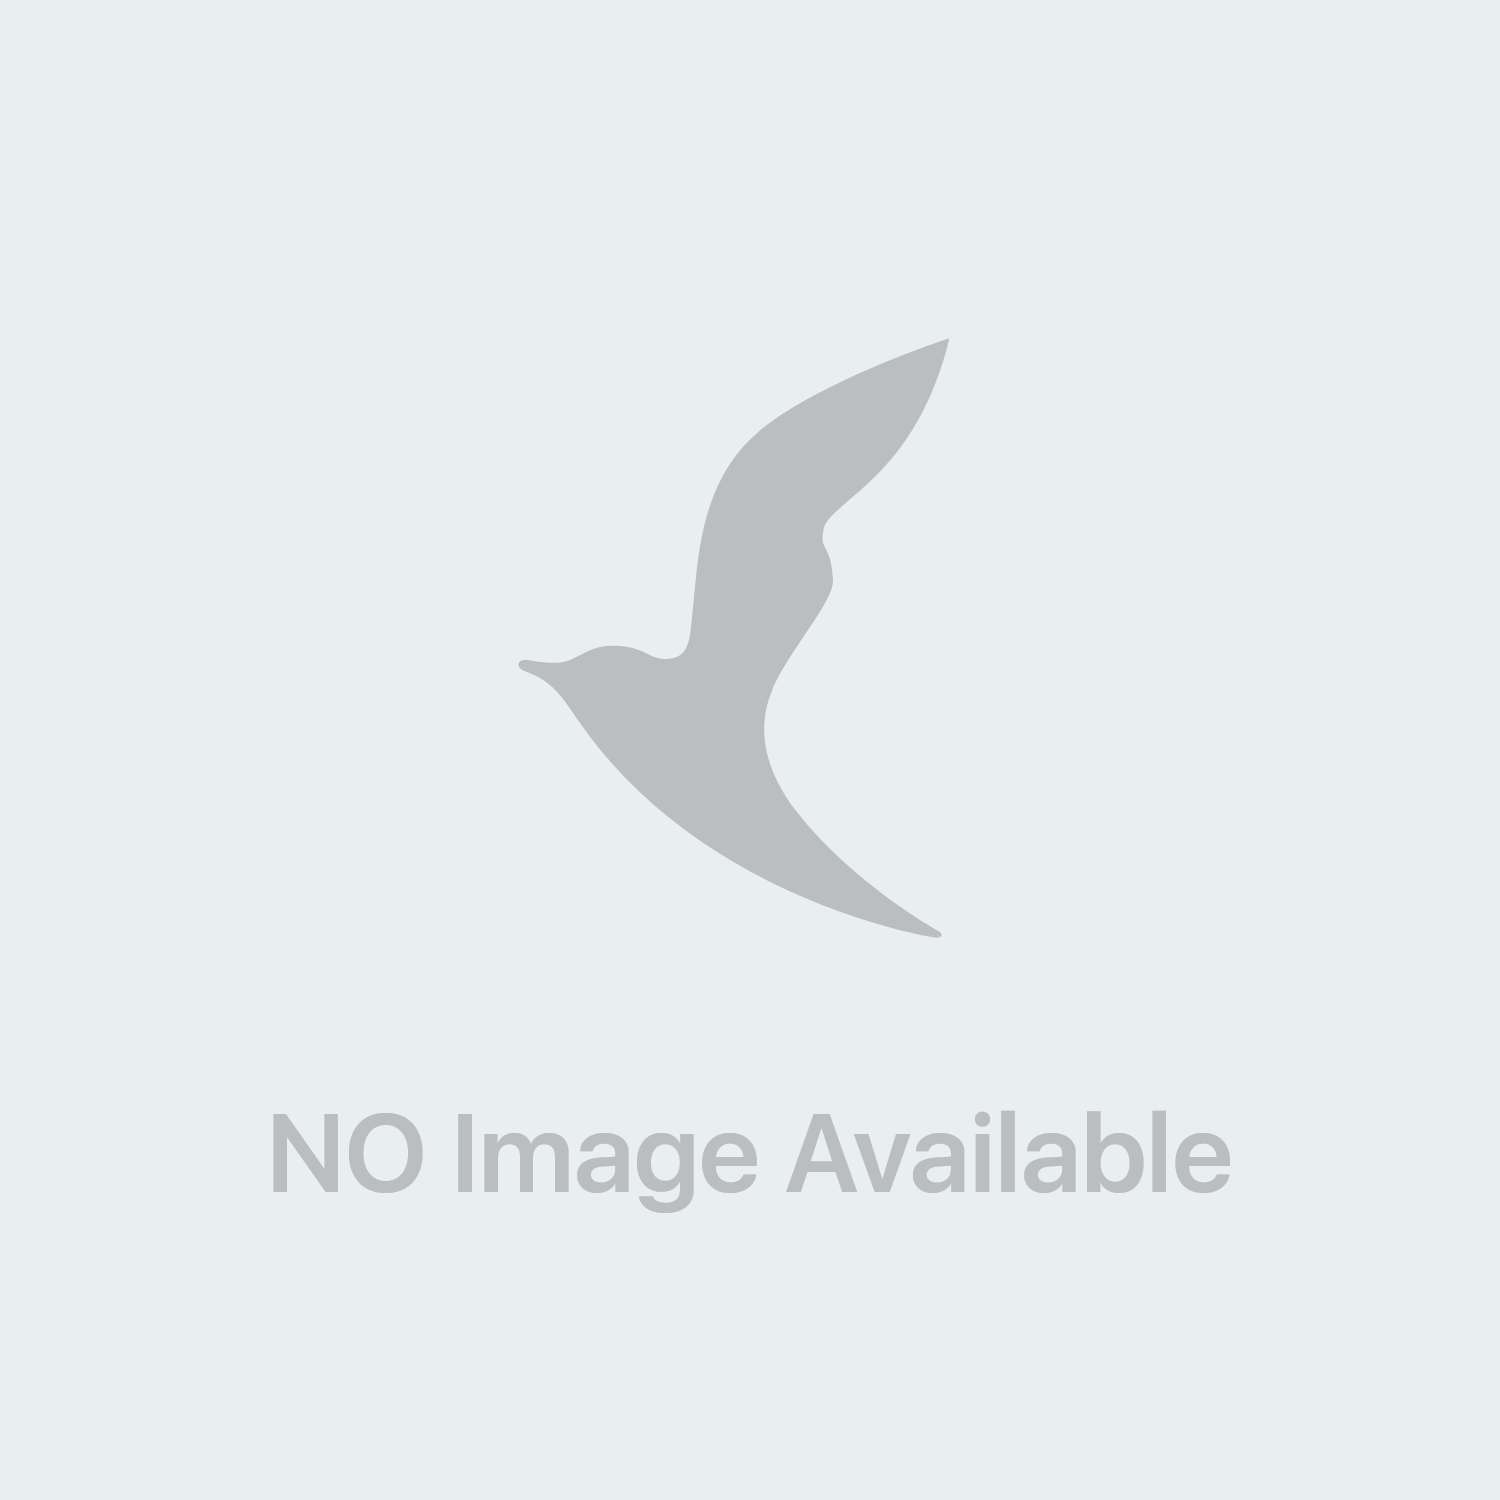 Melasin-Up Melatonina Integratore Sonno 60 Compresse